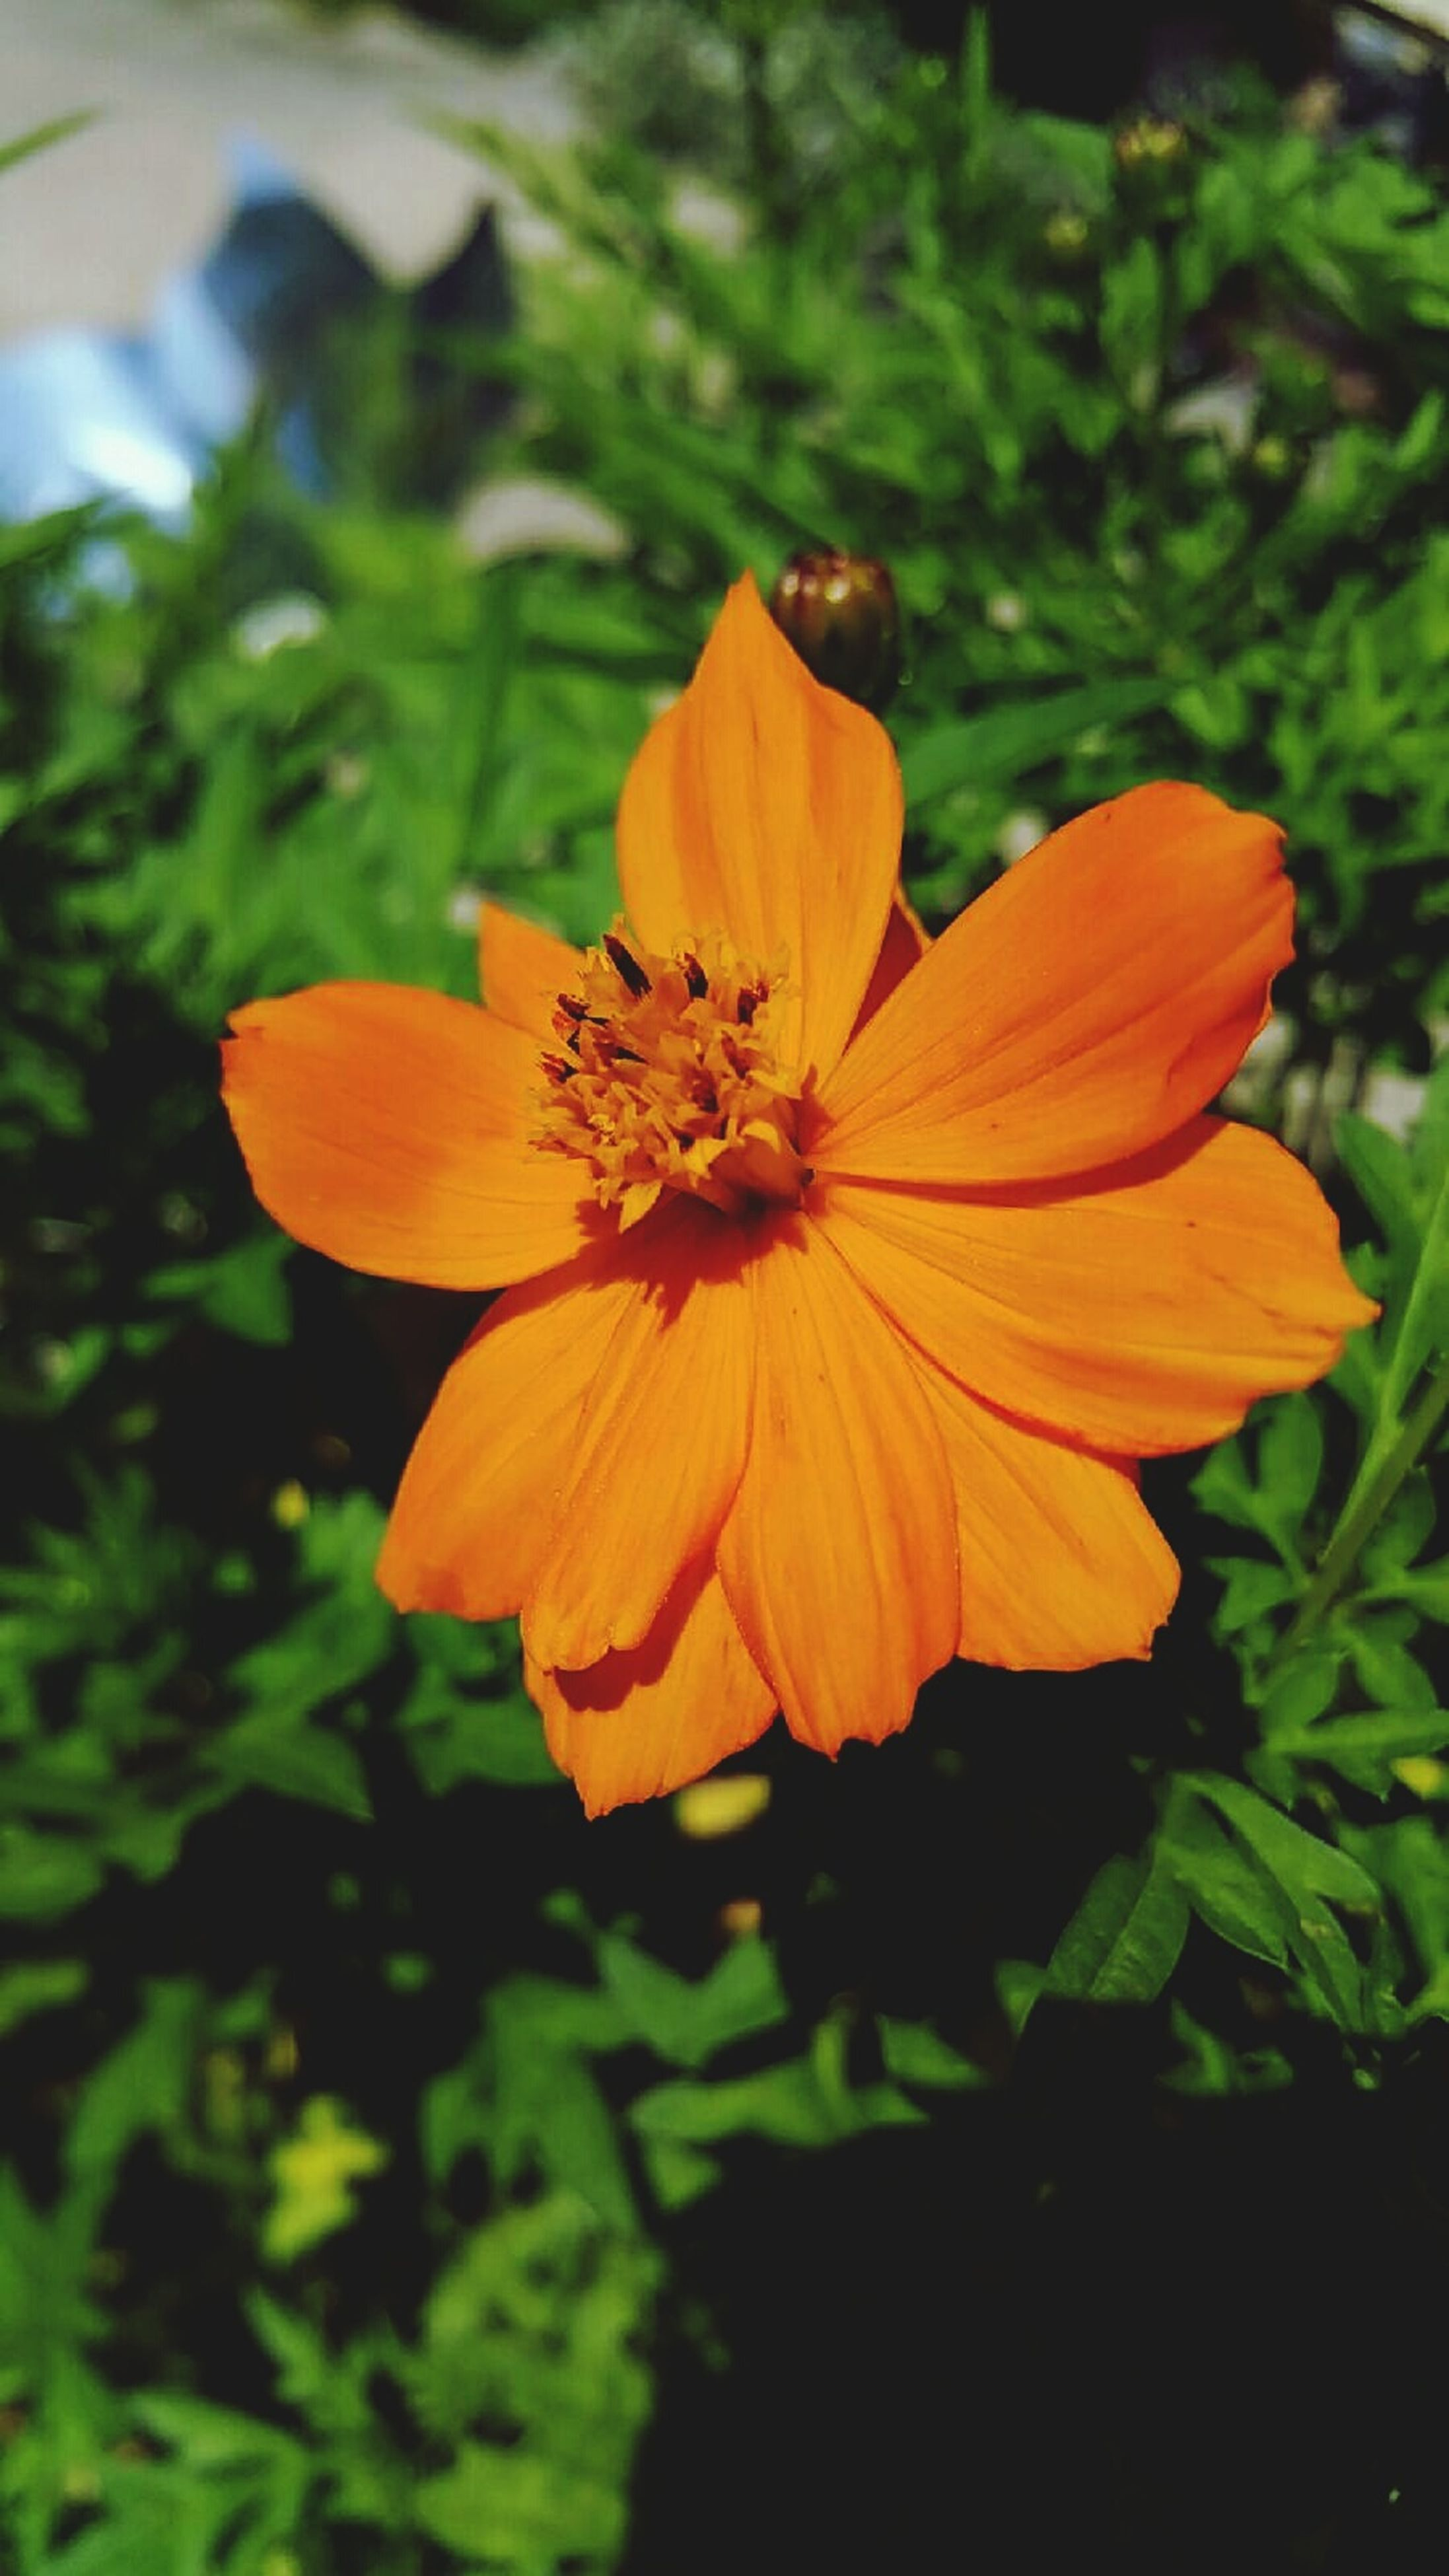 flower, petal, freshness, flower head, fragility, growth, beauty in nature, close-up, orange color, blooming, focus on foreground, pollen, yellow, single flower, nature, plant, stamen, in bloom, park - man made space, blossom